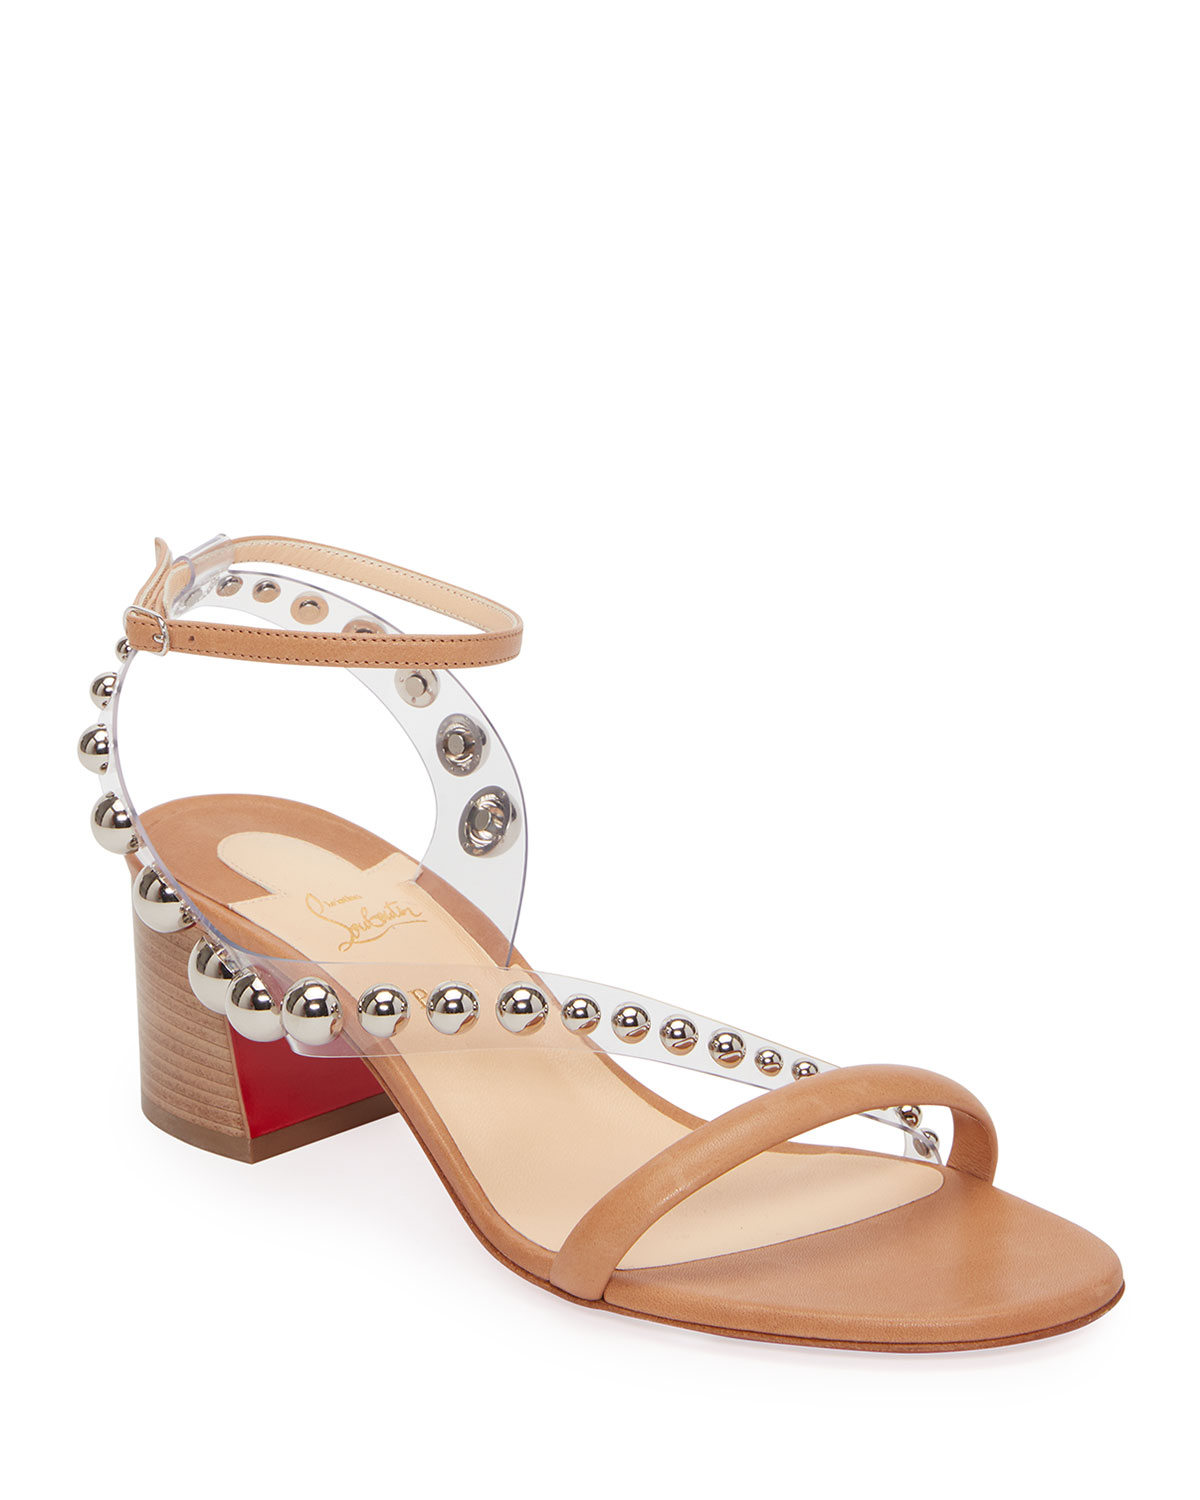 Christian Louboutin Corinne Studded Vinyl Red Sole Sandals